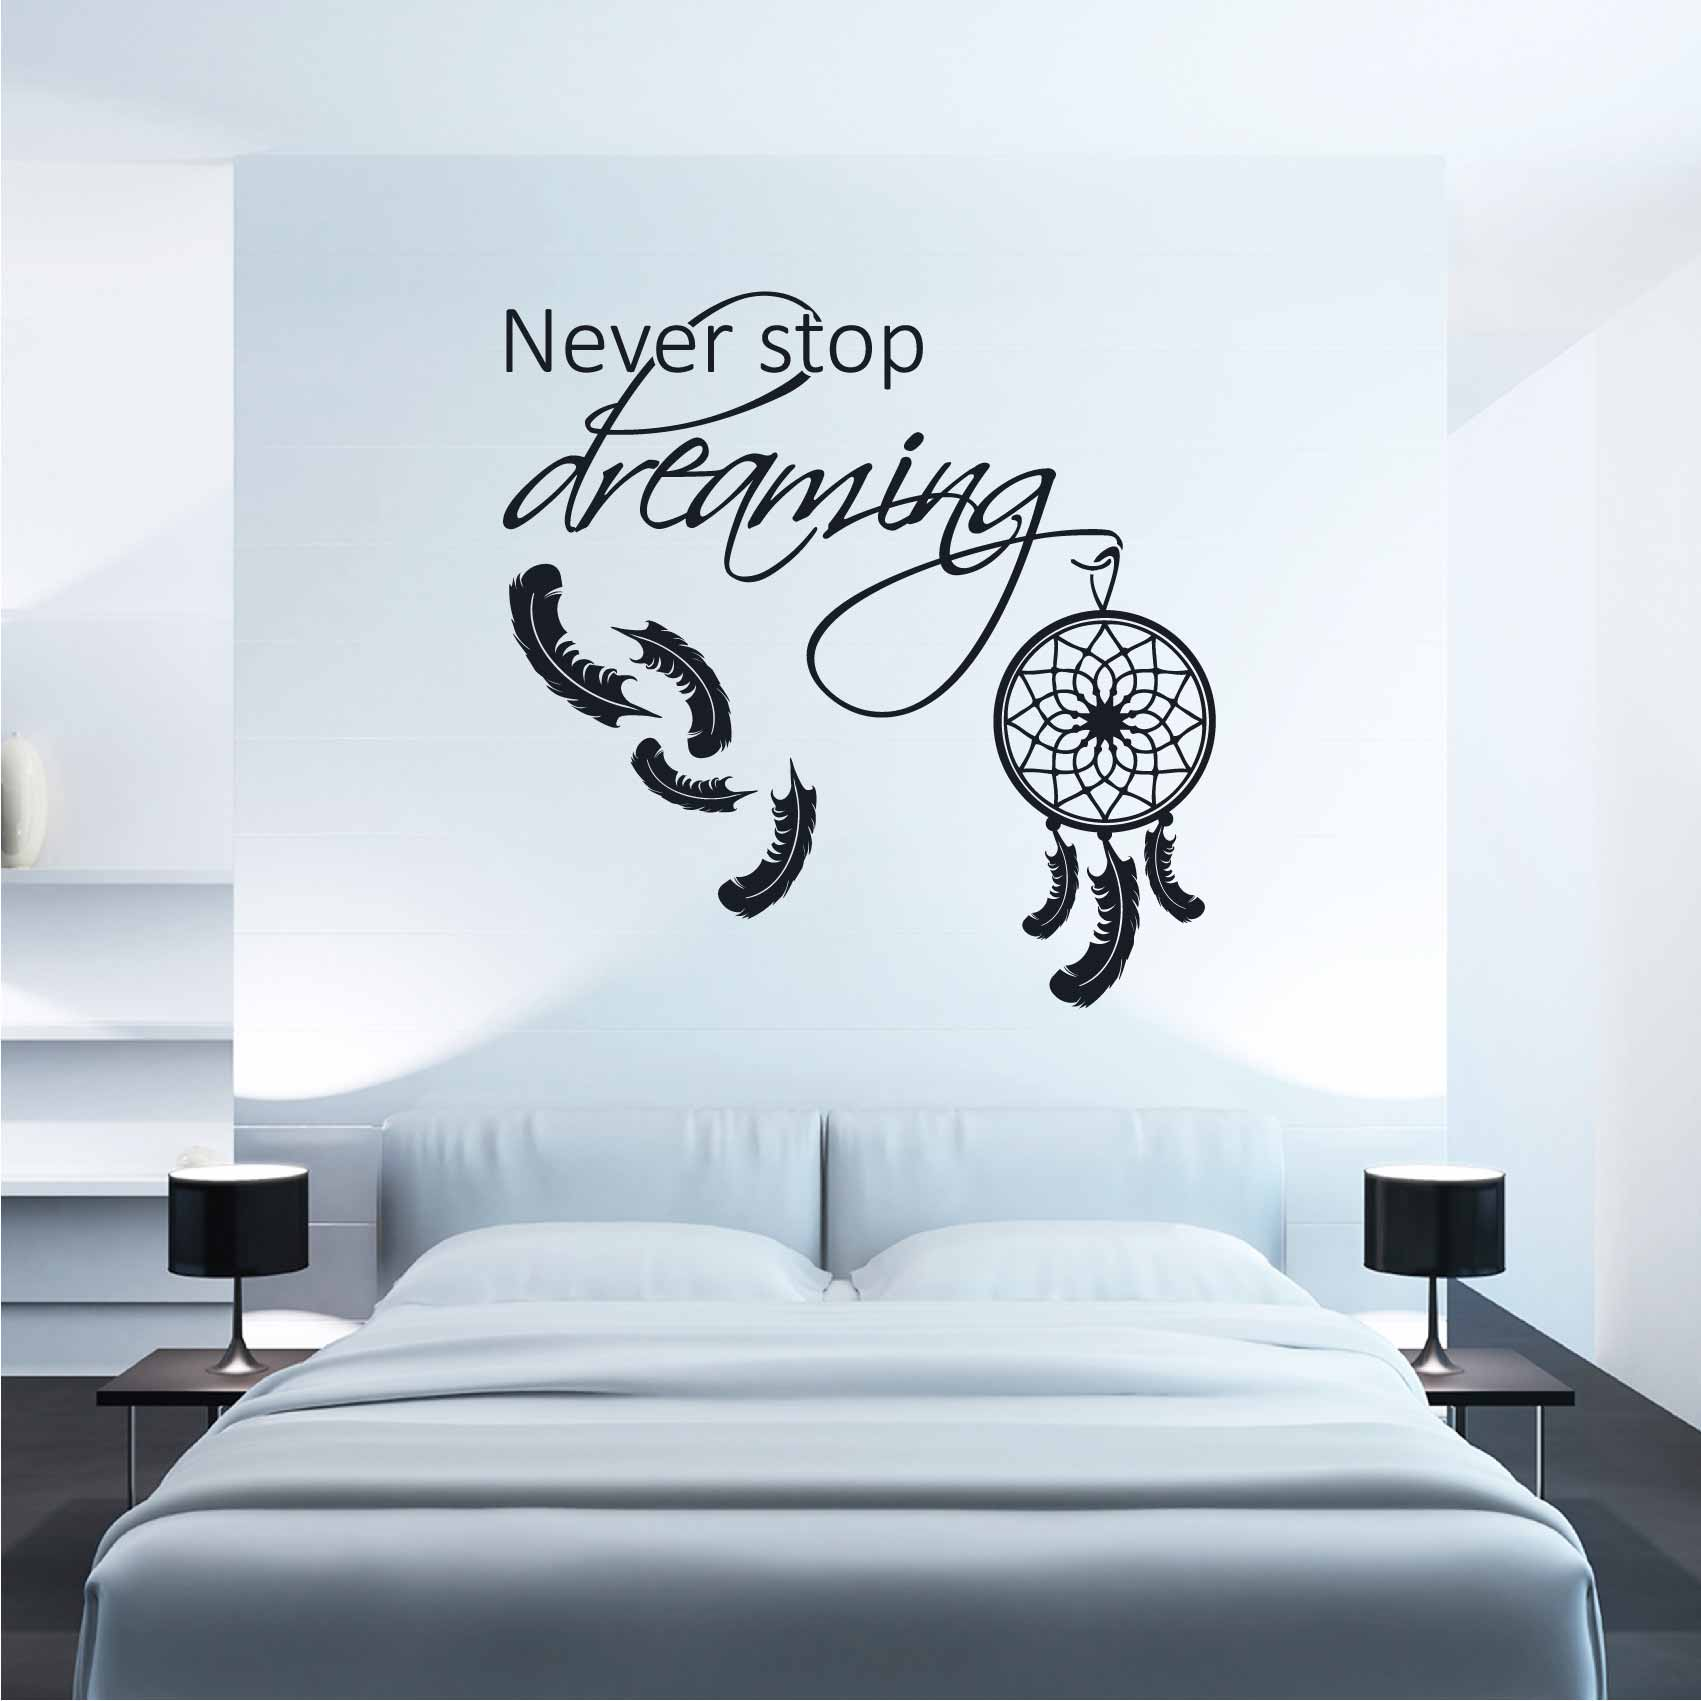 Stickers Pour Chambre Adulte Stickers Chambre Never Stop Dreaming